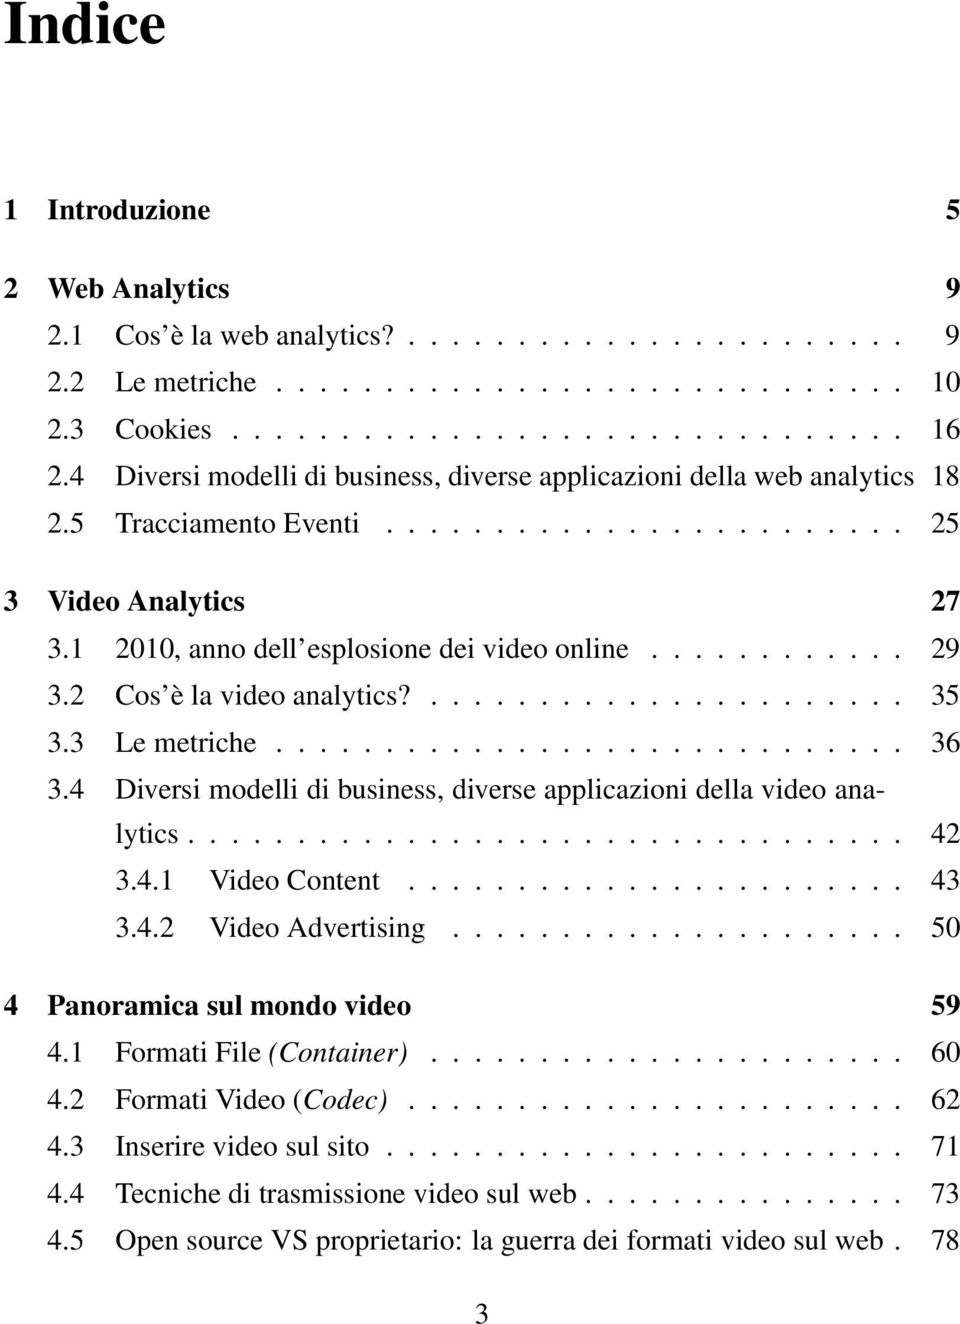 ........... 29 3.2 Cos è la video analytics?...................... 35 3.3 Le metriche............................. 36 3.4 Diversi modelli di business, diverse applicazioni della video analytics................................. 42 3.